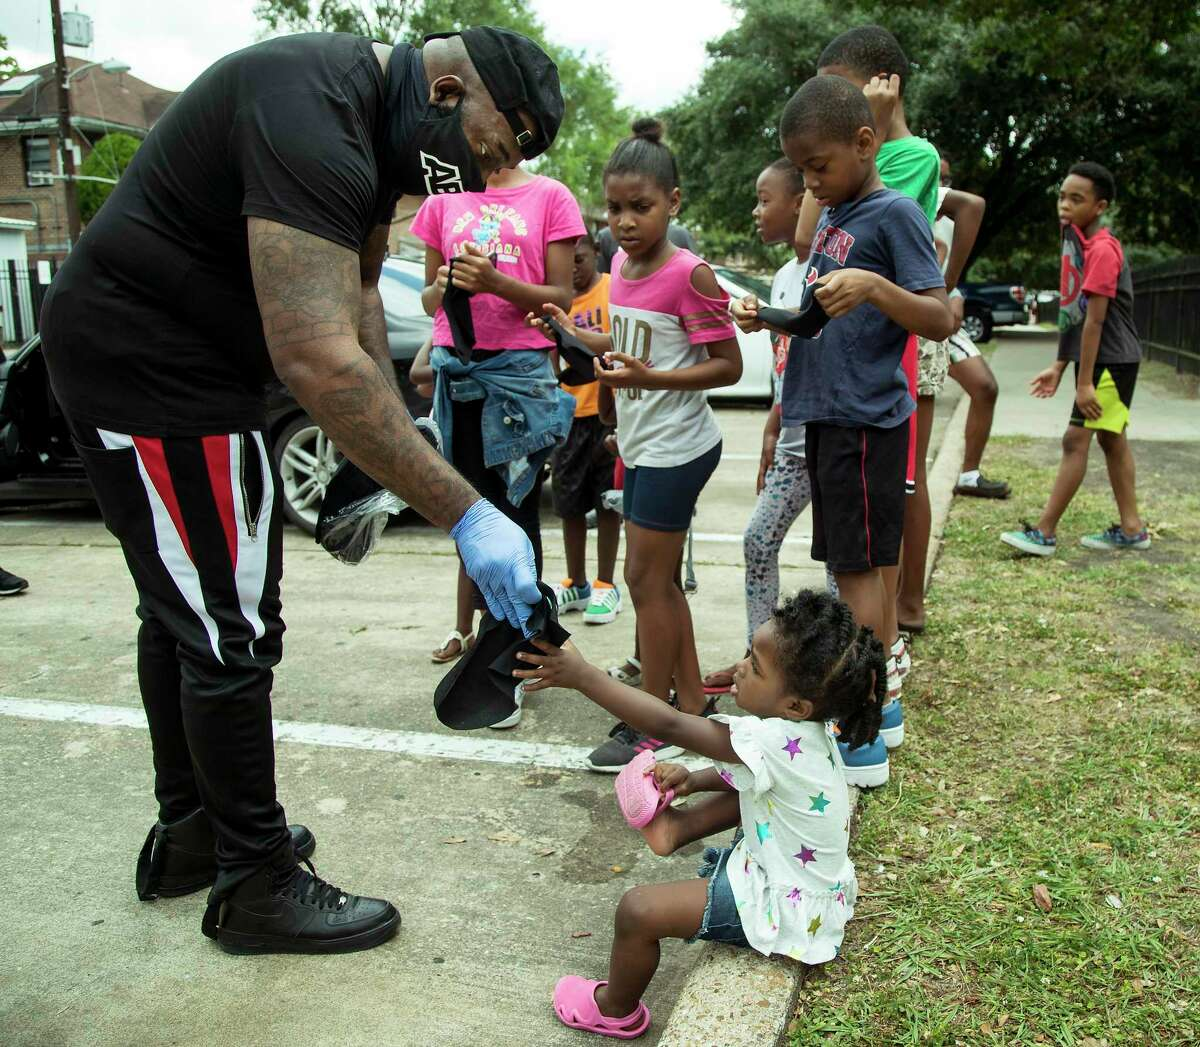 """Rap artist Trae The Truth hands out masks to a group of kids in the Third Ward on Wednesday, May 13, 2020 in Houston. The rapper spent the day handing out 10,000 masks to people in neighborhoods all around the city. """"I am trying to get masks to people who wouldn't normally be able to get one,"""" he said."""